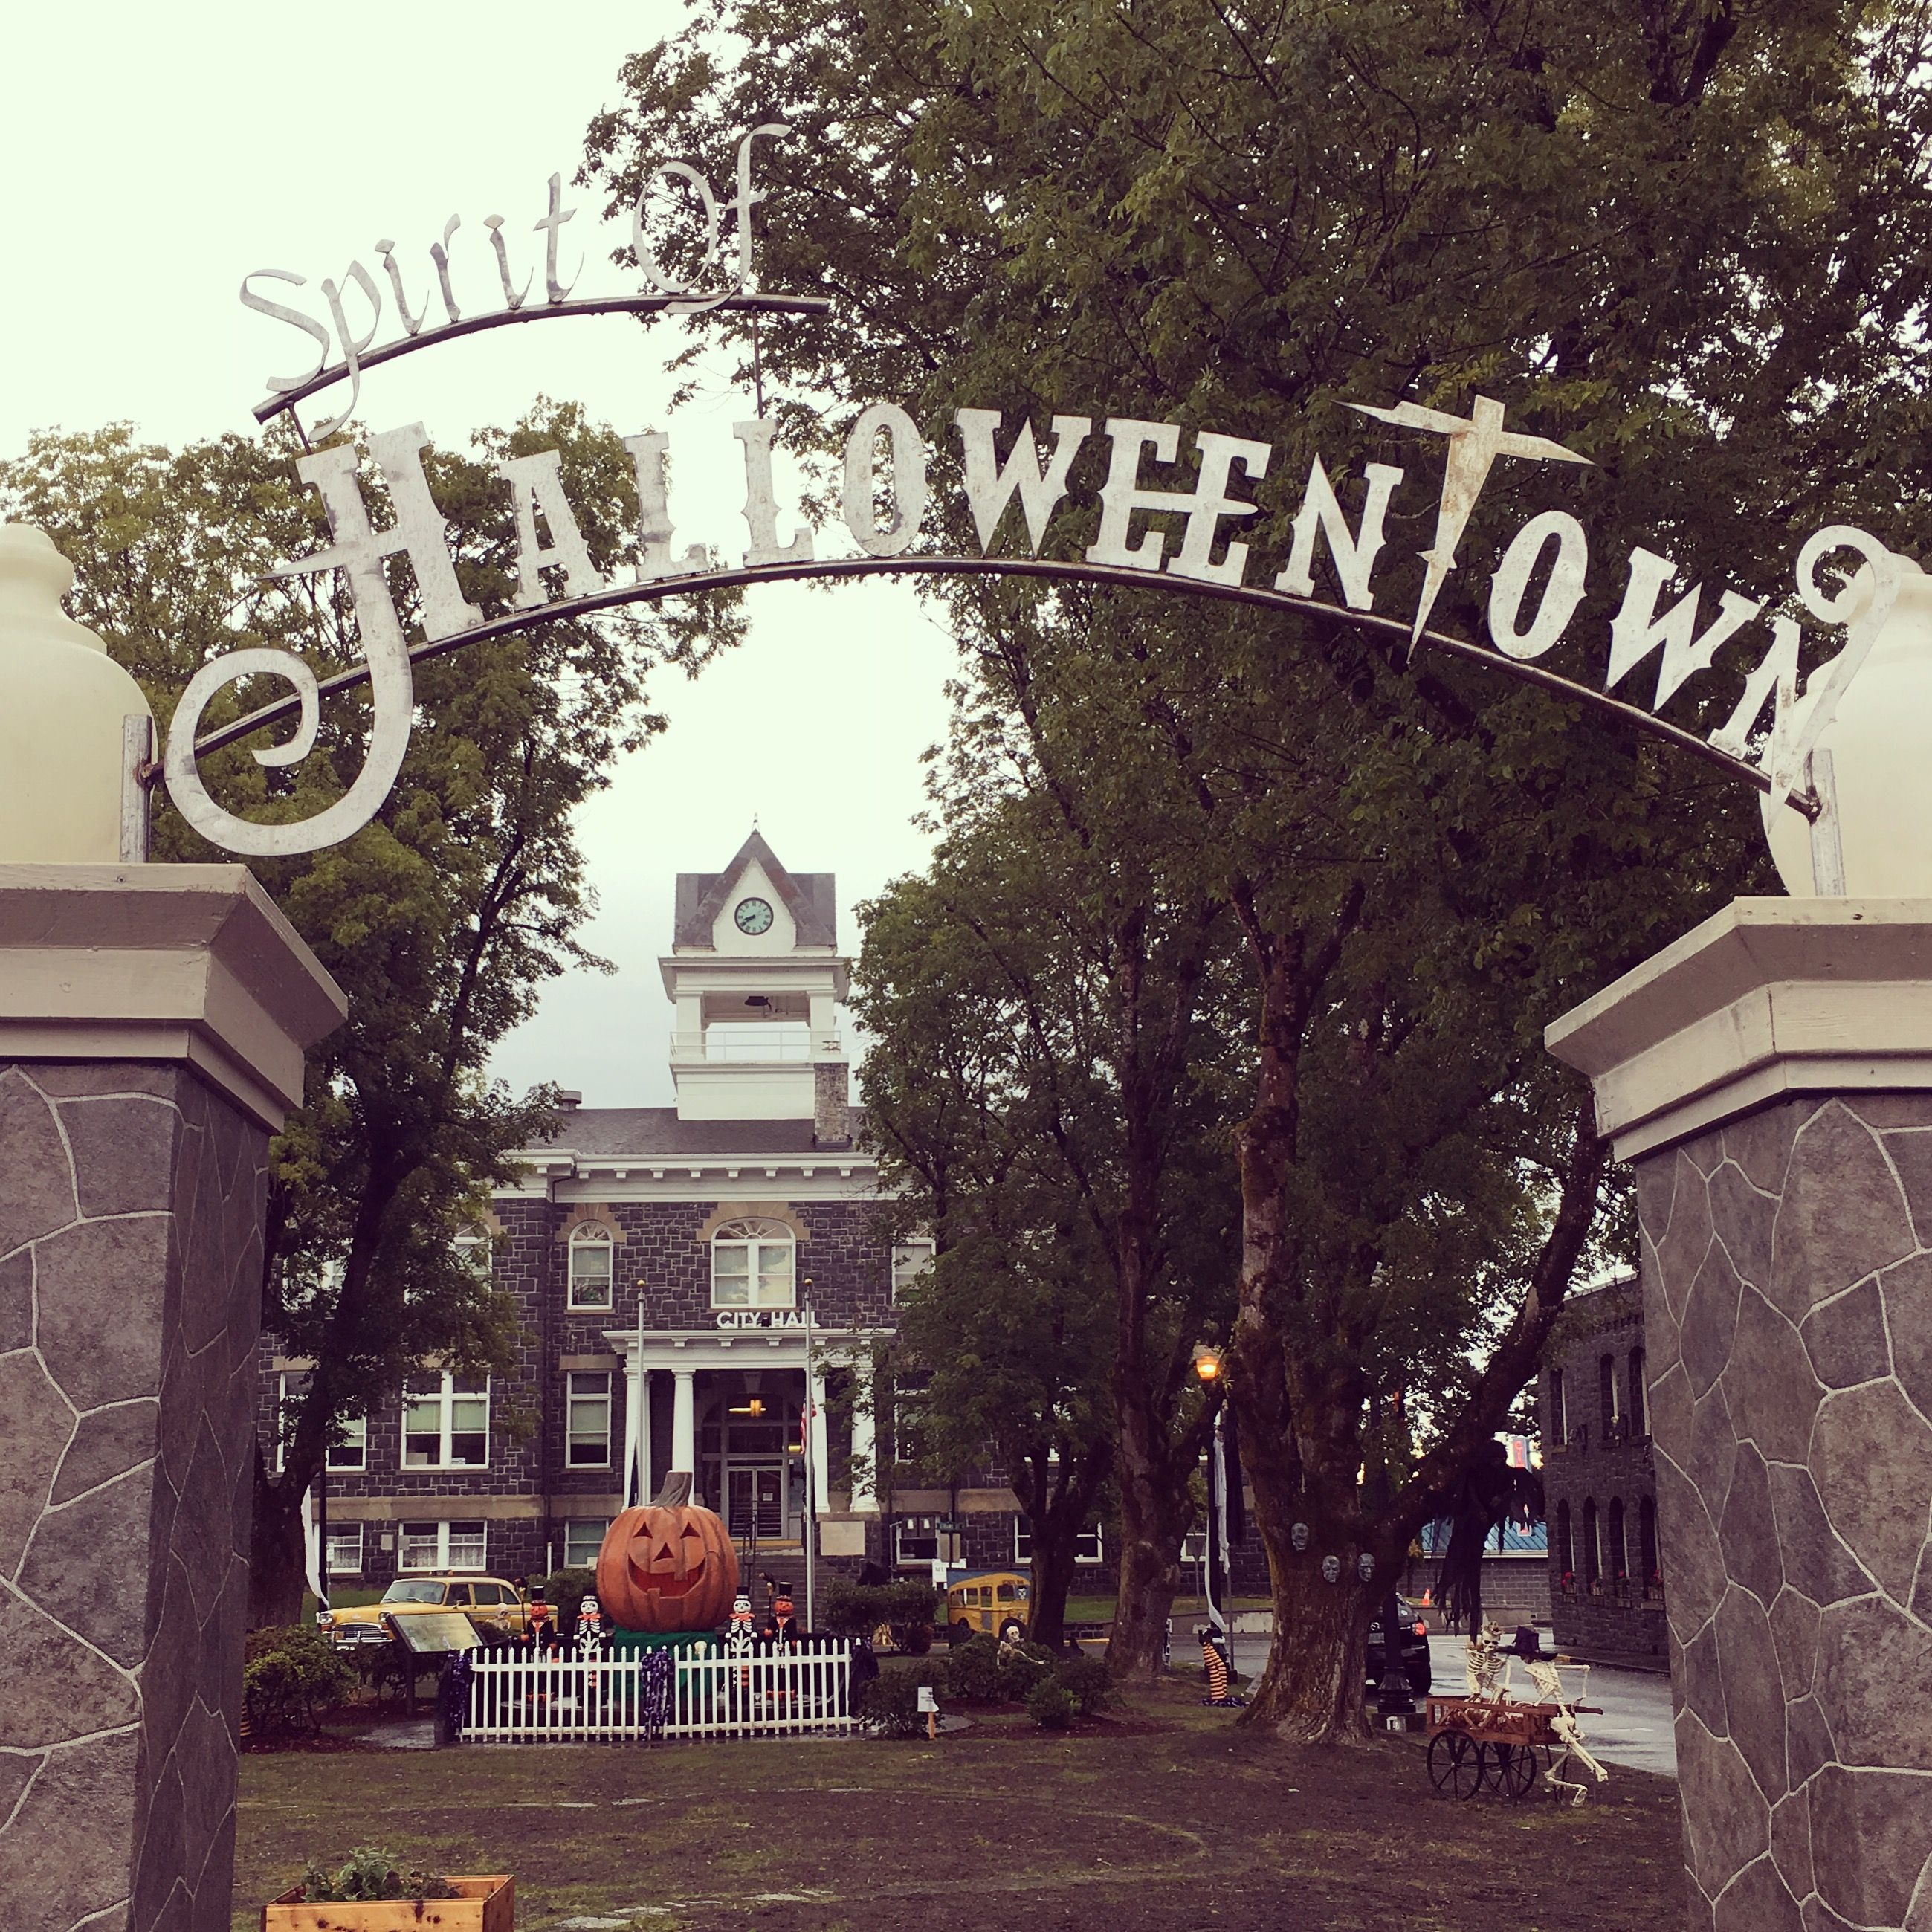 Halloween Town Oregon 2020 Dates Halloweentown is St. Helens, Oregon! | Halloween town, Oregon road